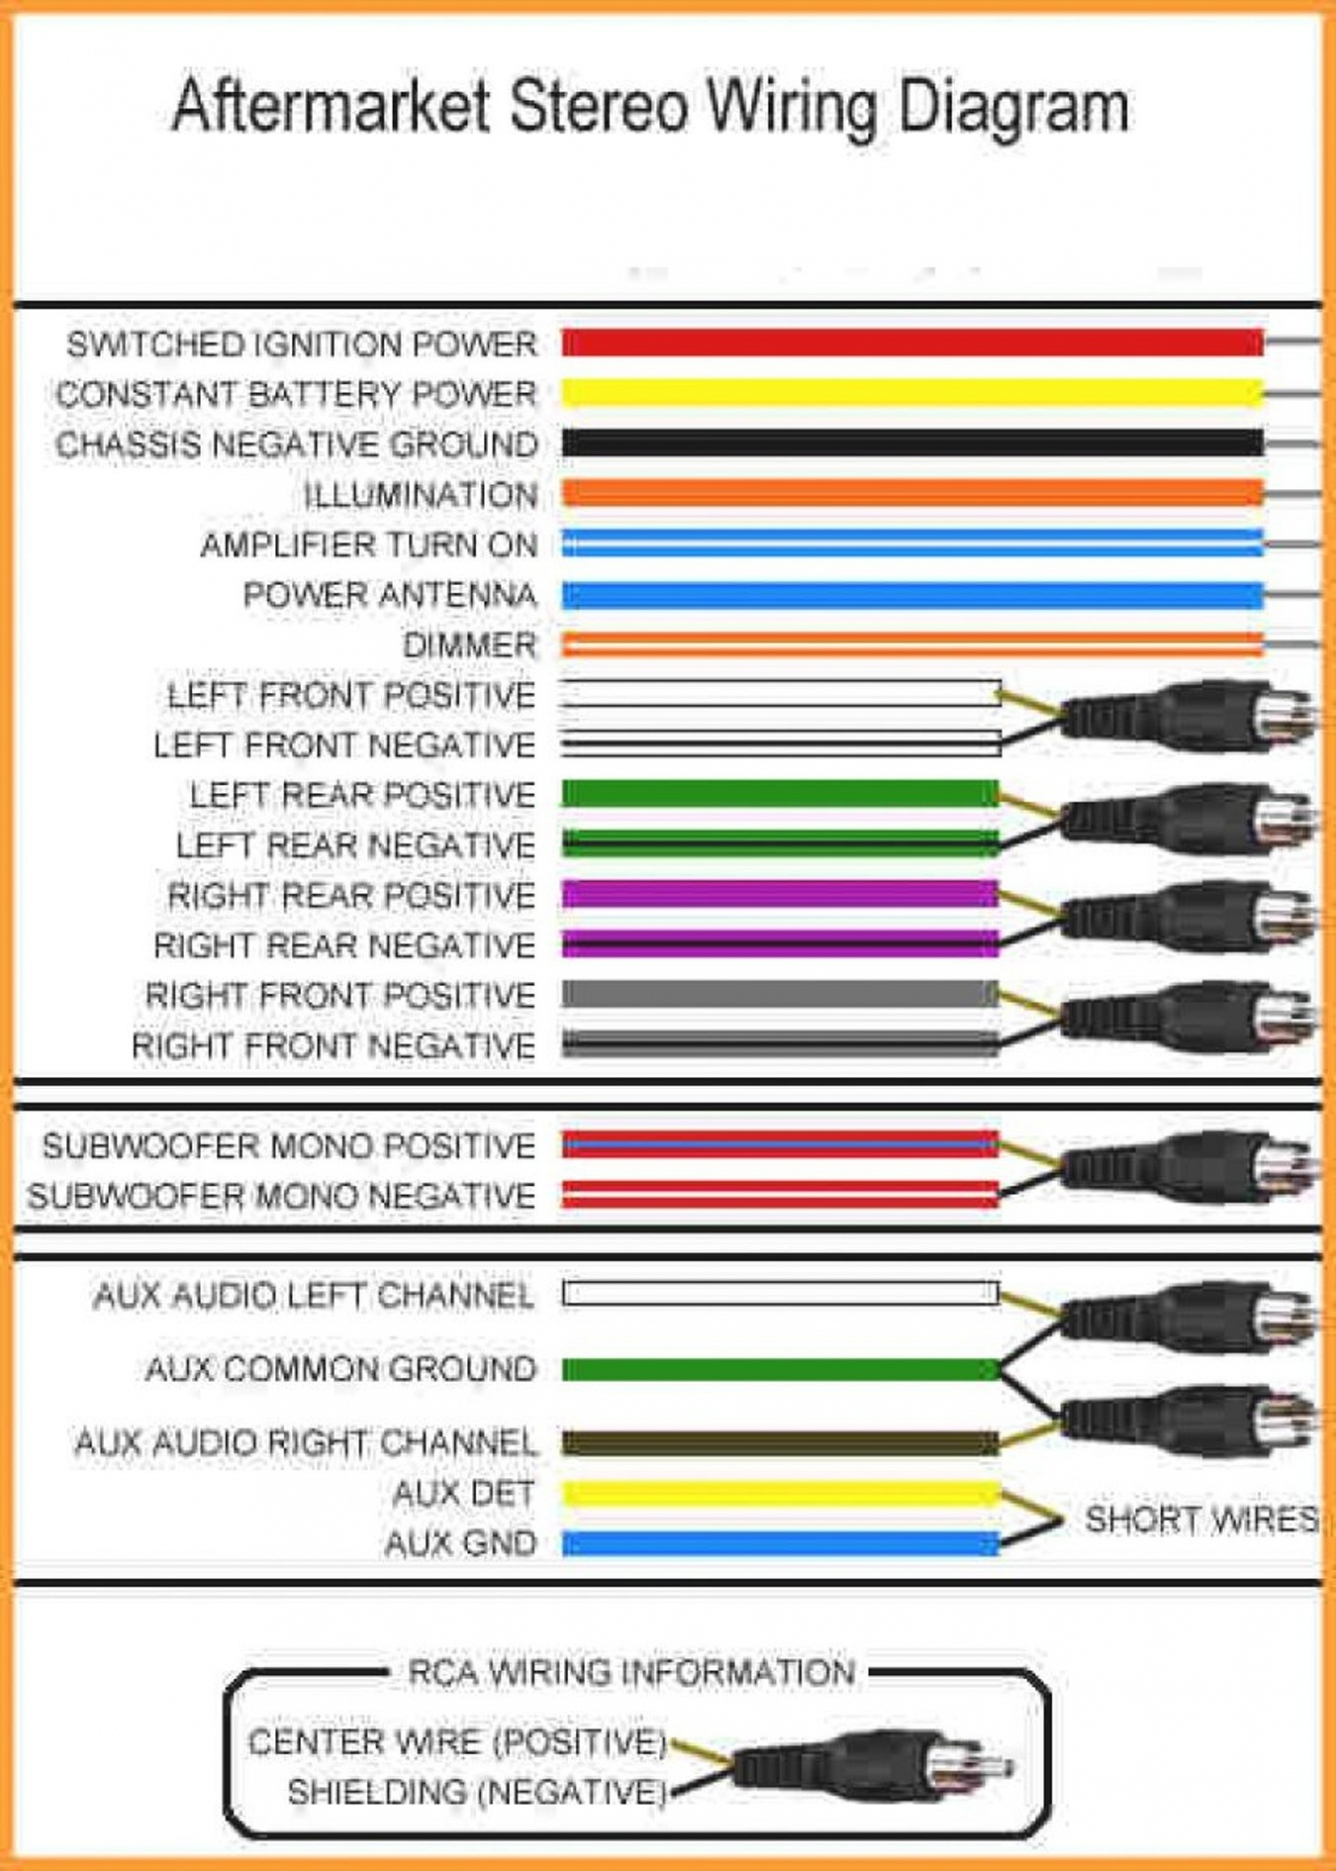 Car Wiring Harness Color Code | Manual E-Books - Kenwood Car Stereo Wiring Diagram